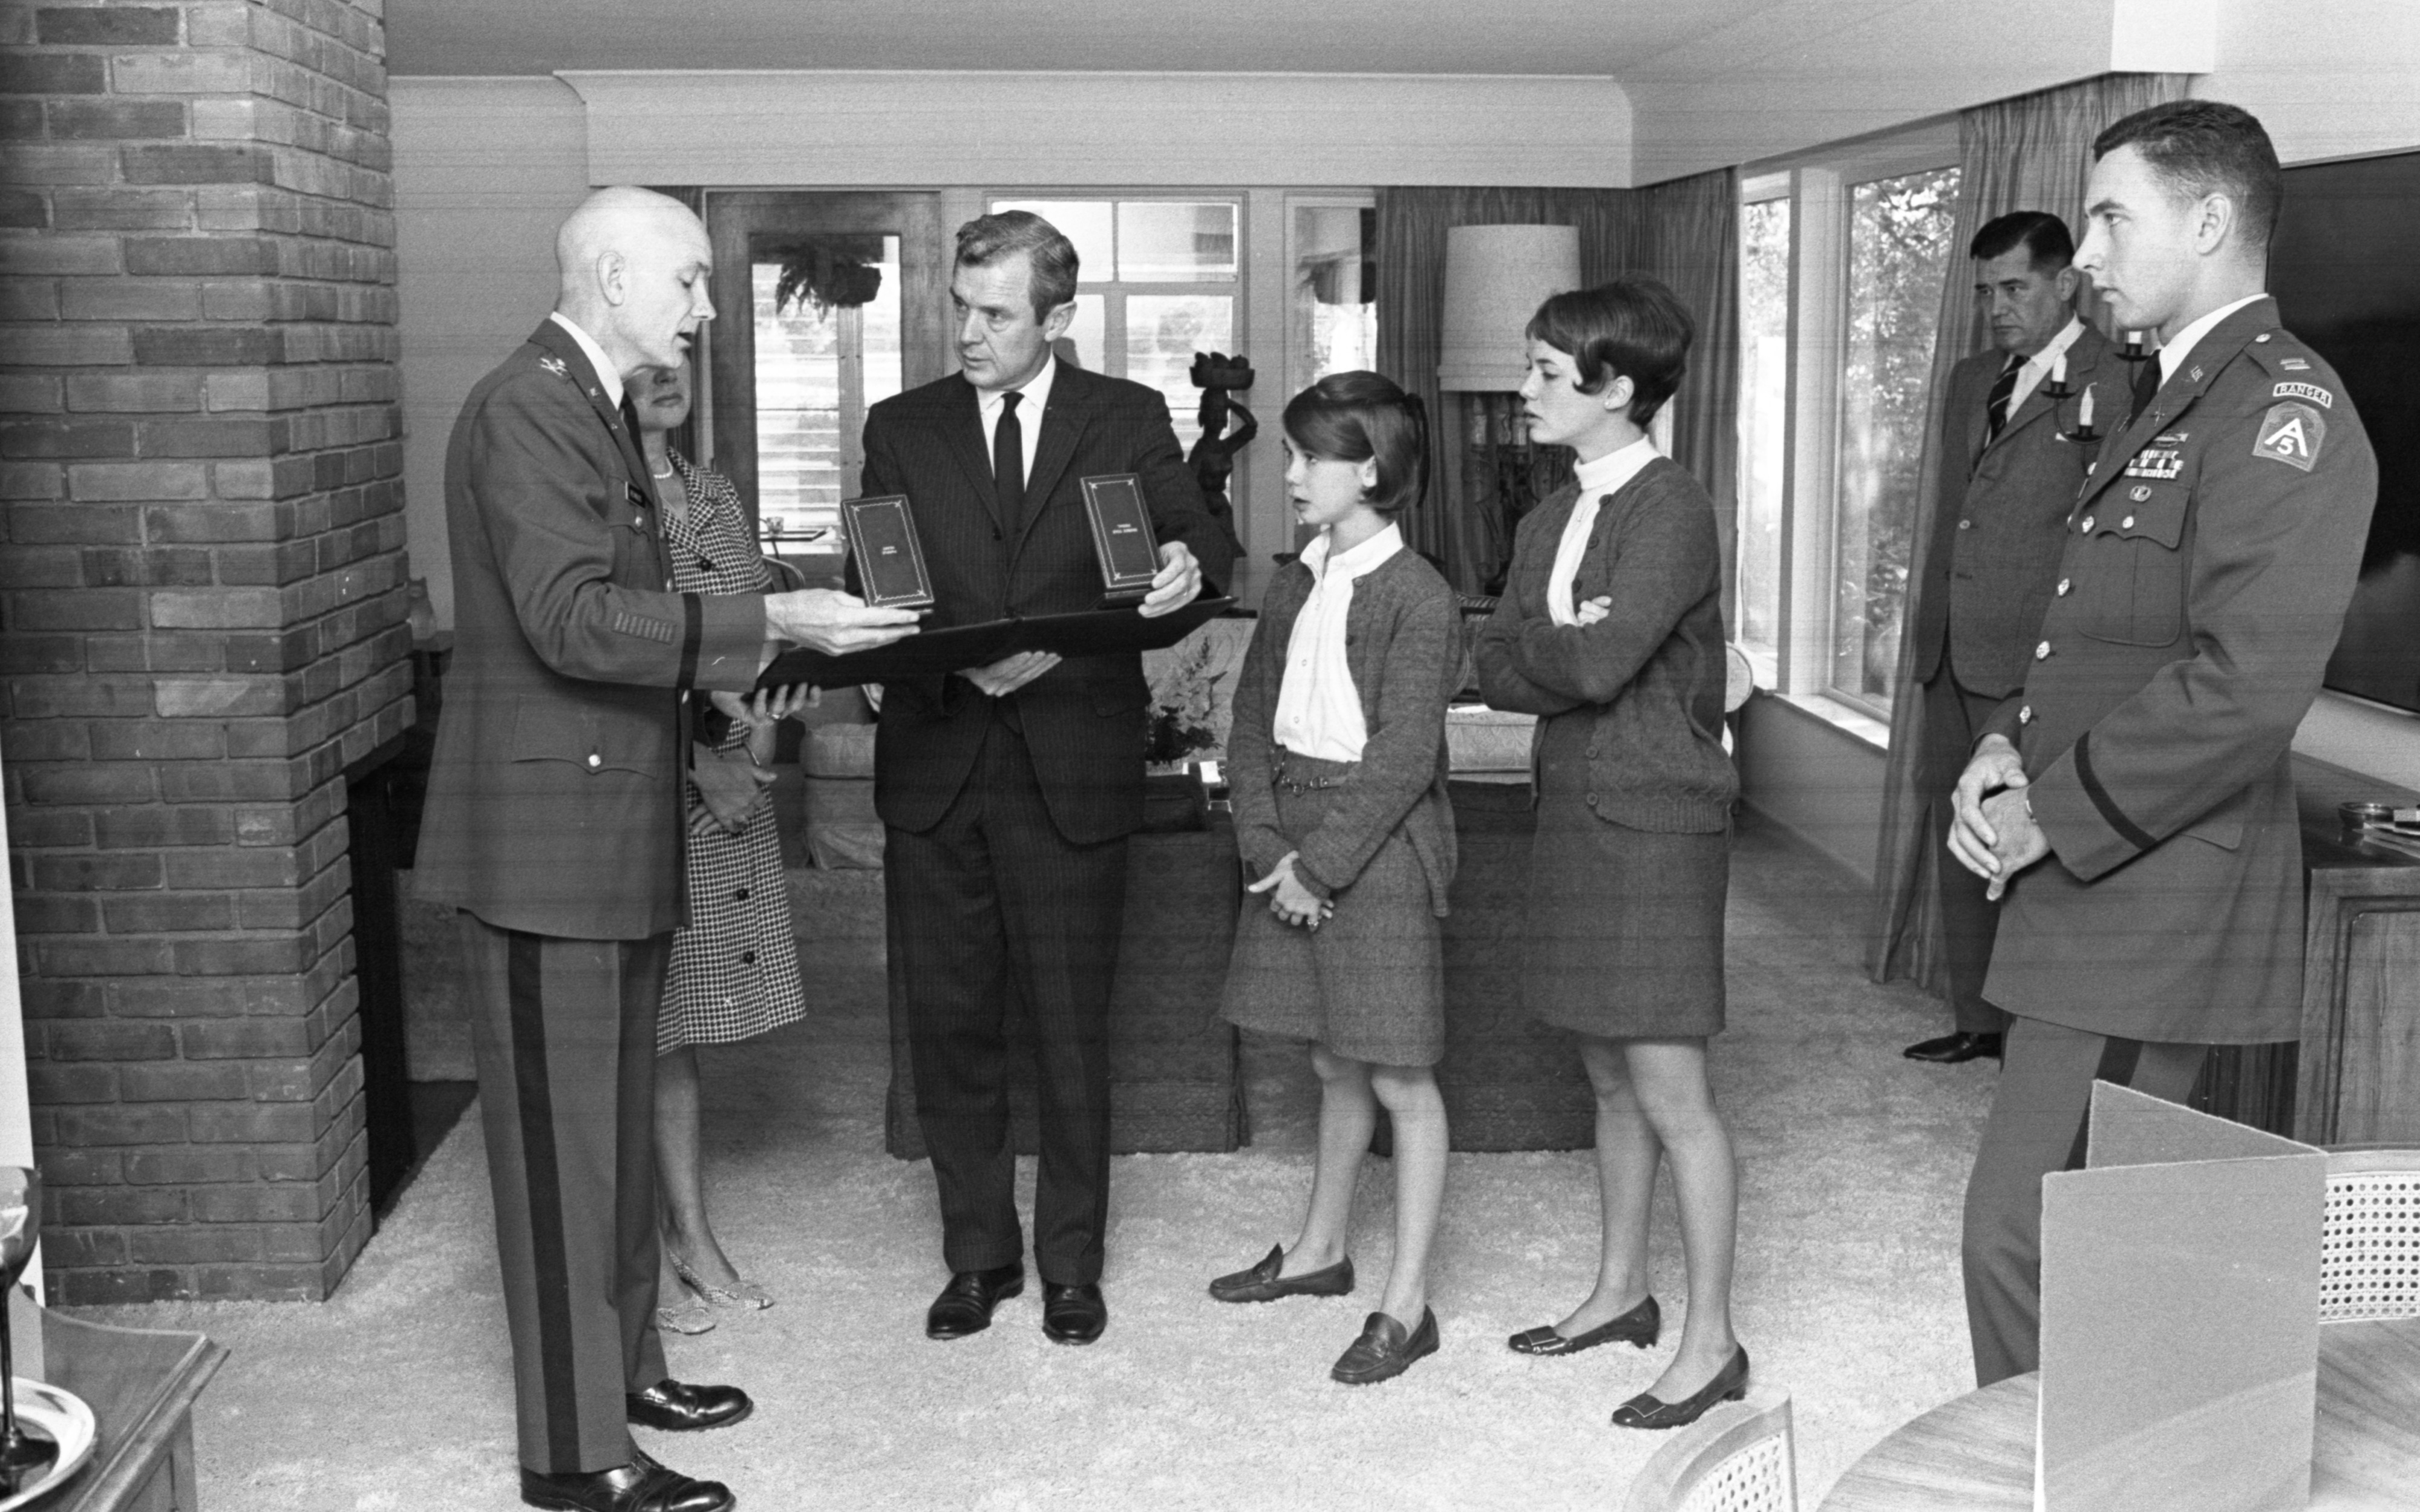 Seven Medals Earned By George V. Airey Jr. Are Presented To His Family, October 1968 image